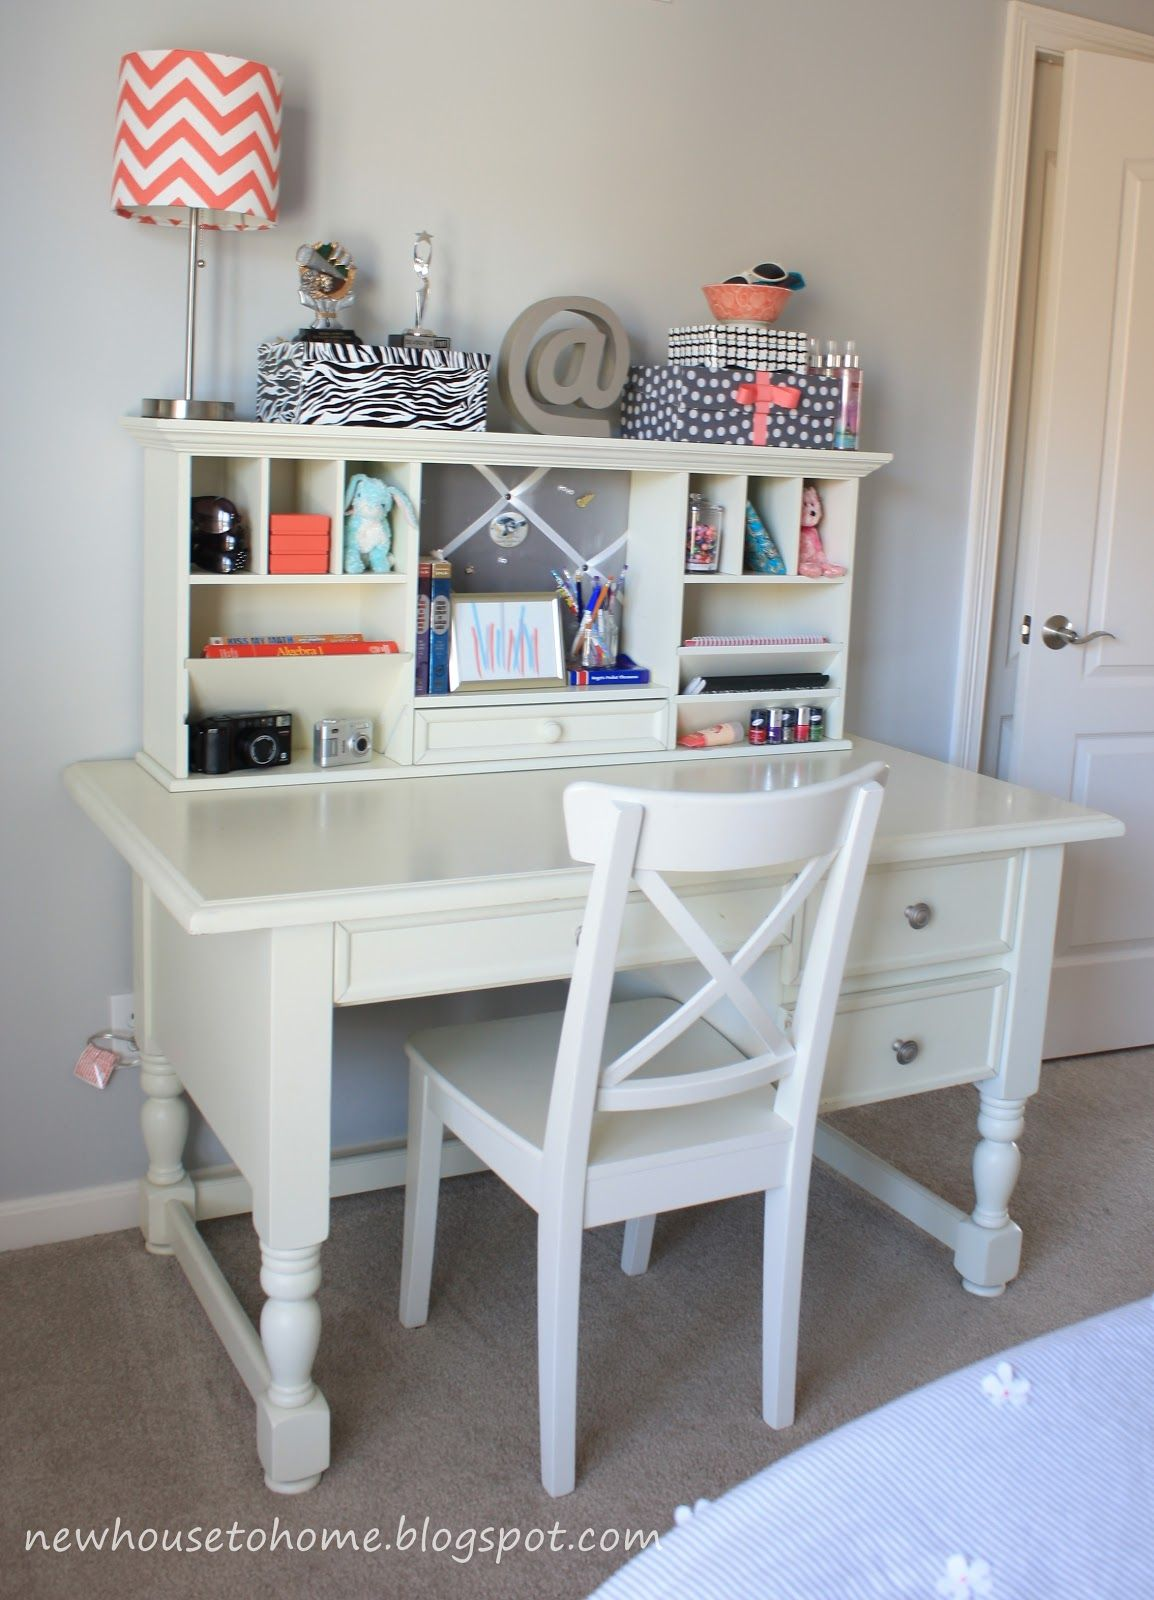 White Desk For Girls Room Amazing Desk For Girls Room  Every Teenage Girl Needs A Place To Be Decorating Inspiration